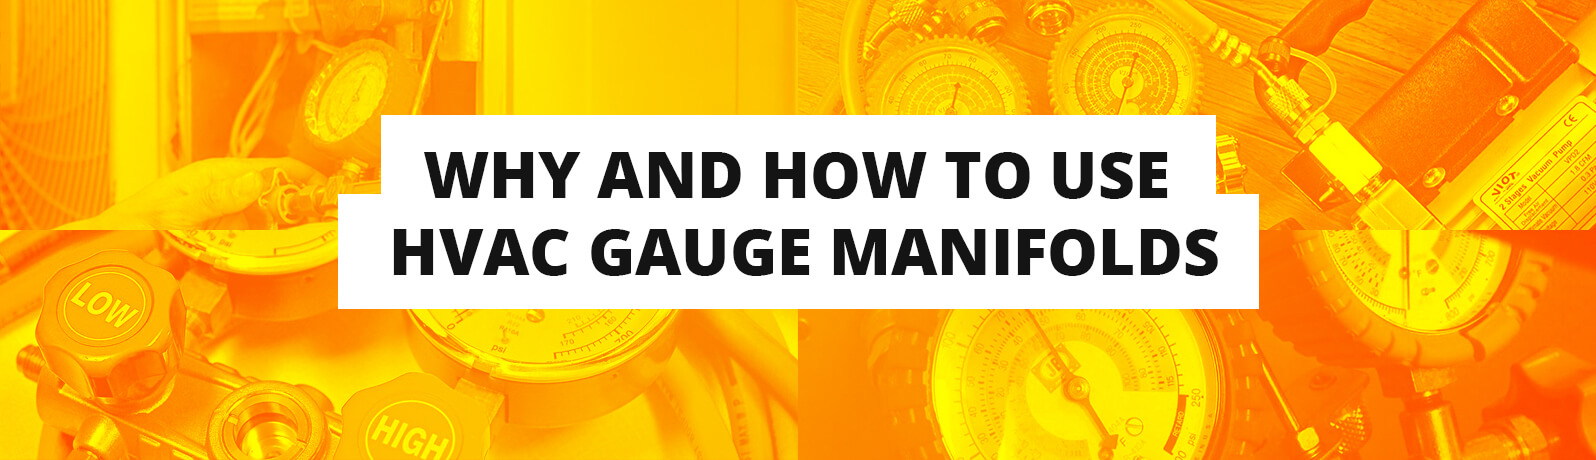 why and how to use hvac gauge manifolds